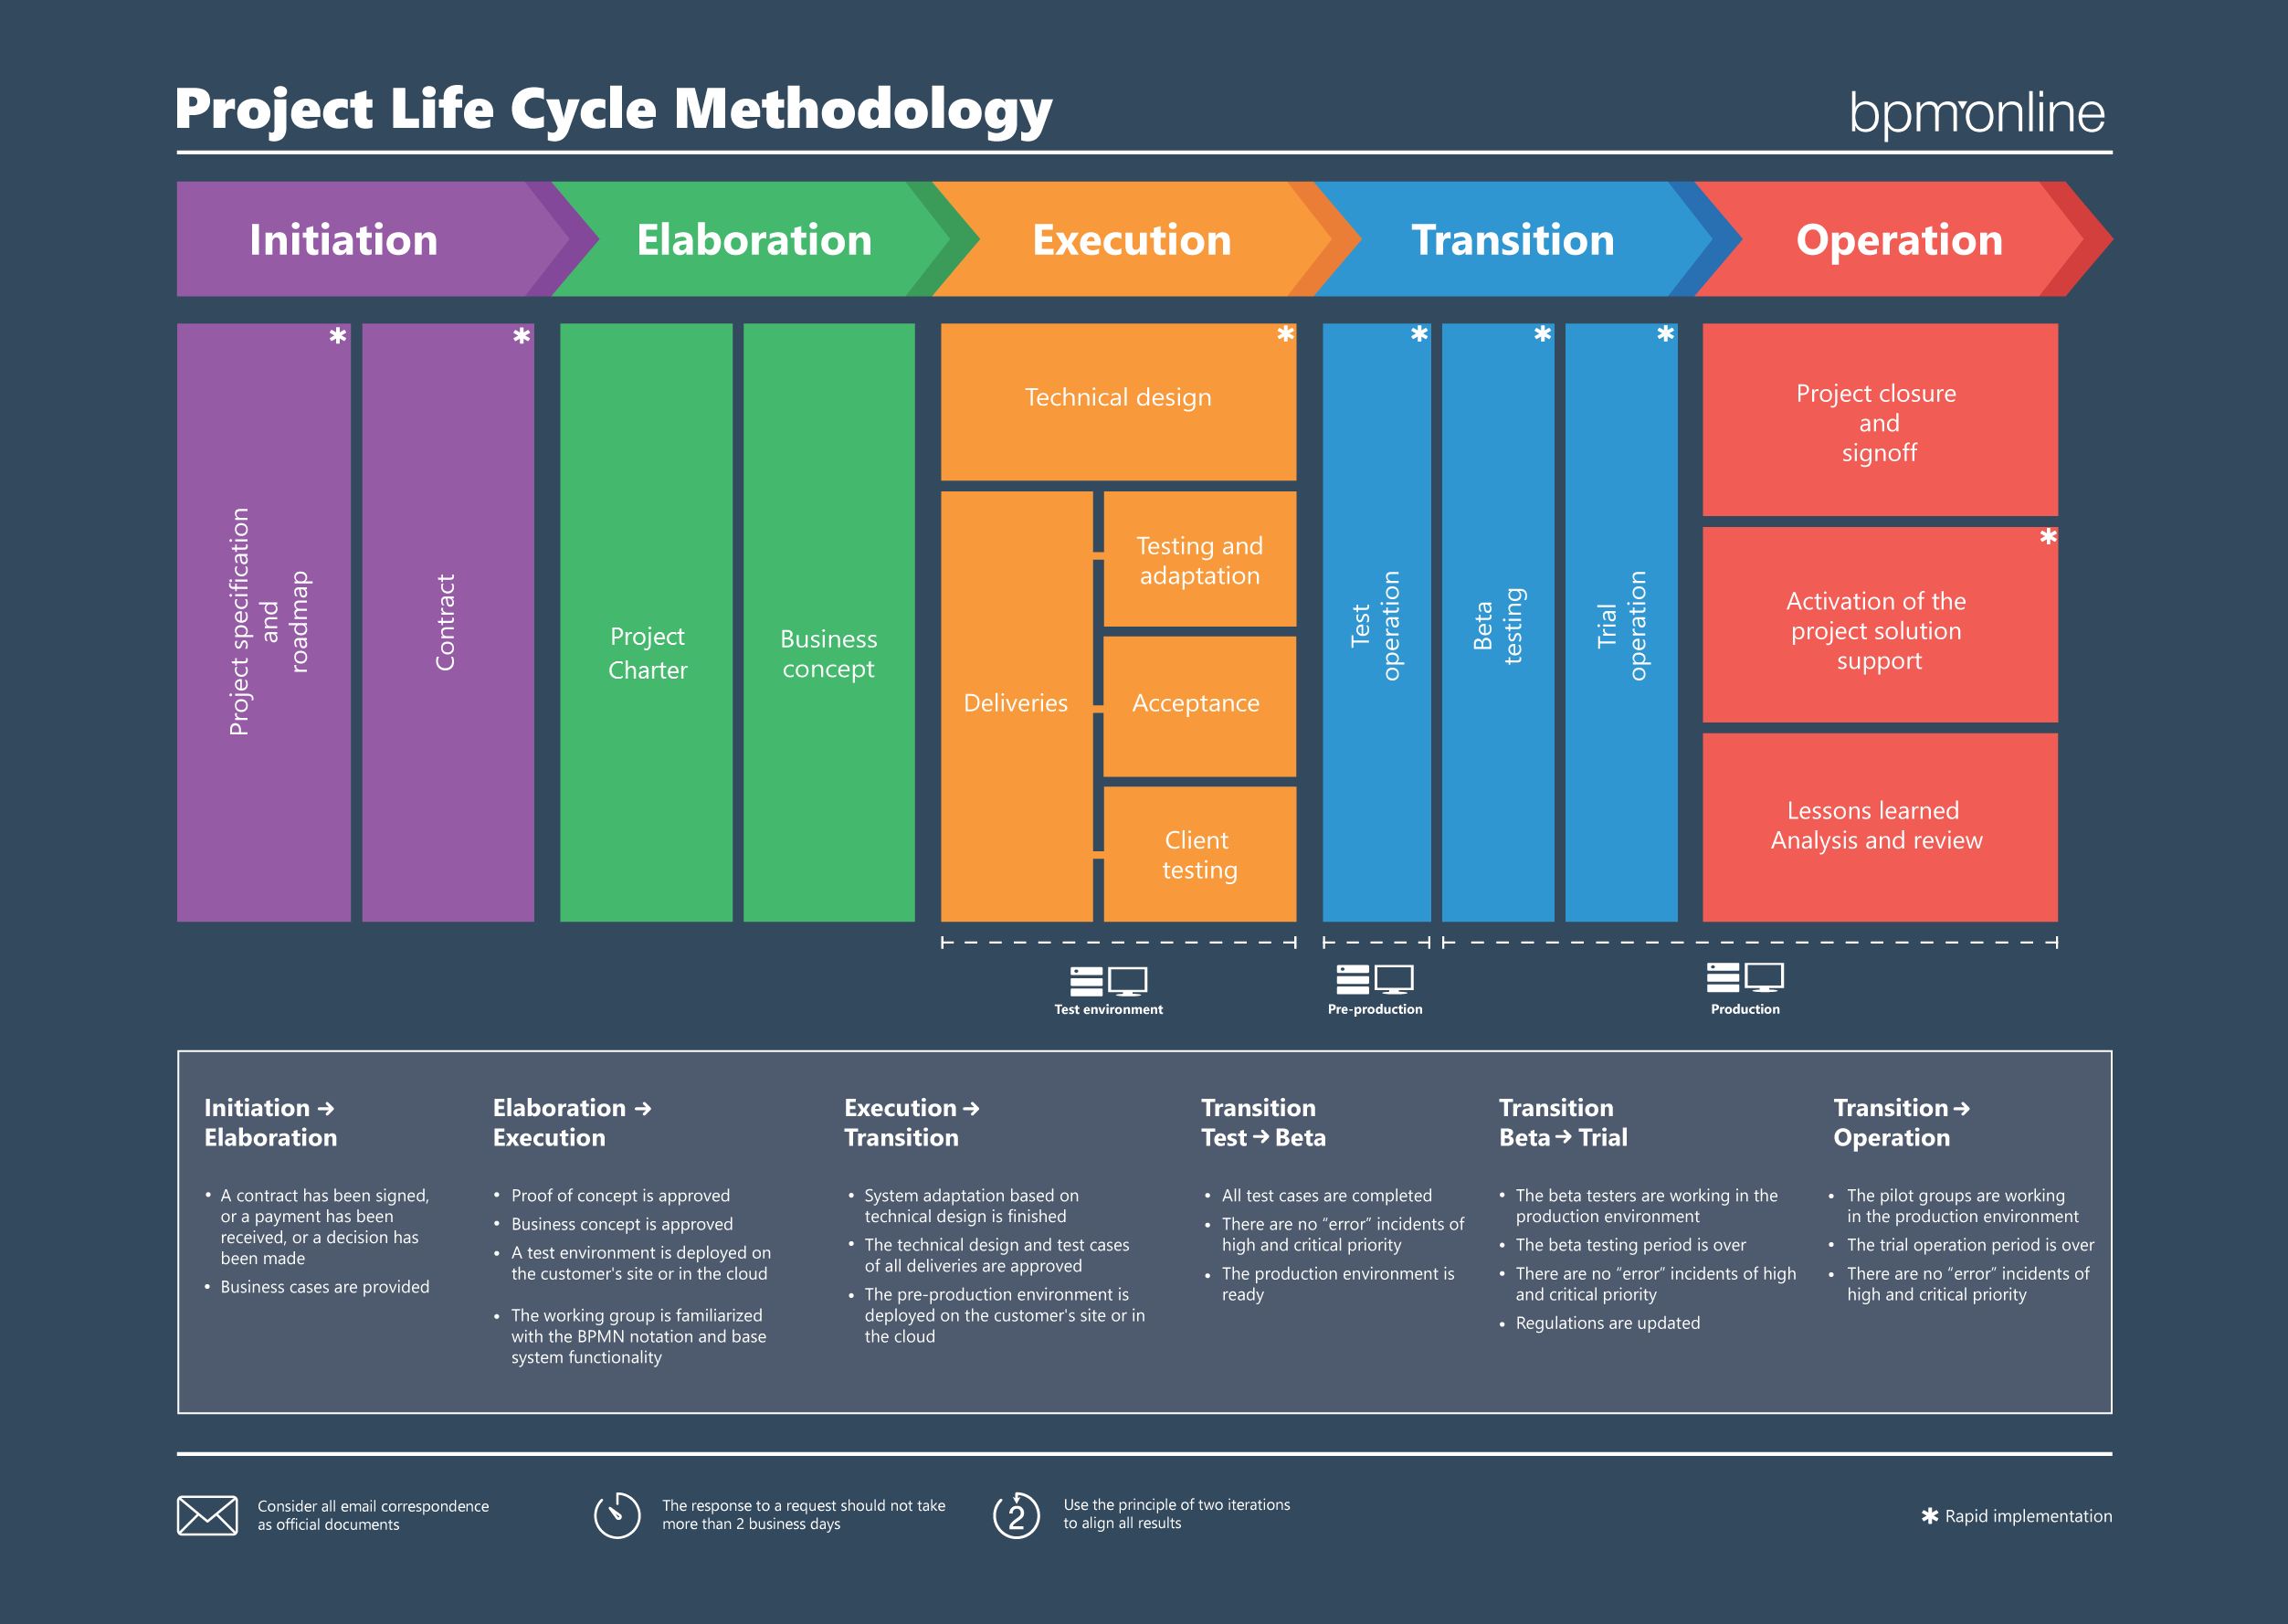 the concept of life cycle in operations The availability of properly skilled and trained staff throughout the life-cycle of the tms is critically important to getting the most out of any system and assuring that it meets its intended concept of operations throughout the system's intended life-cycle.